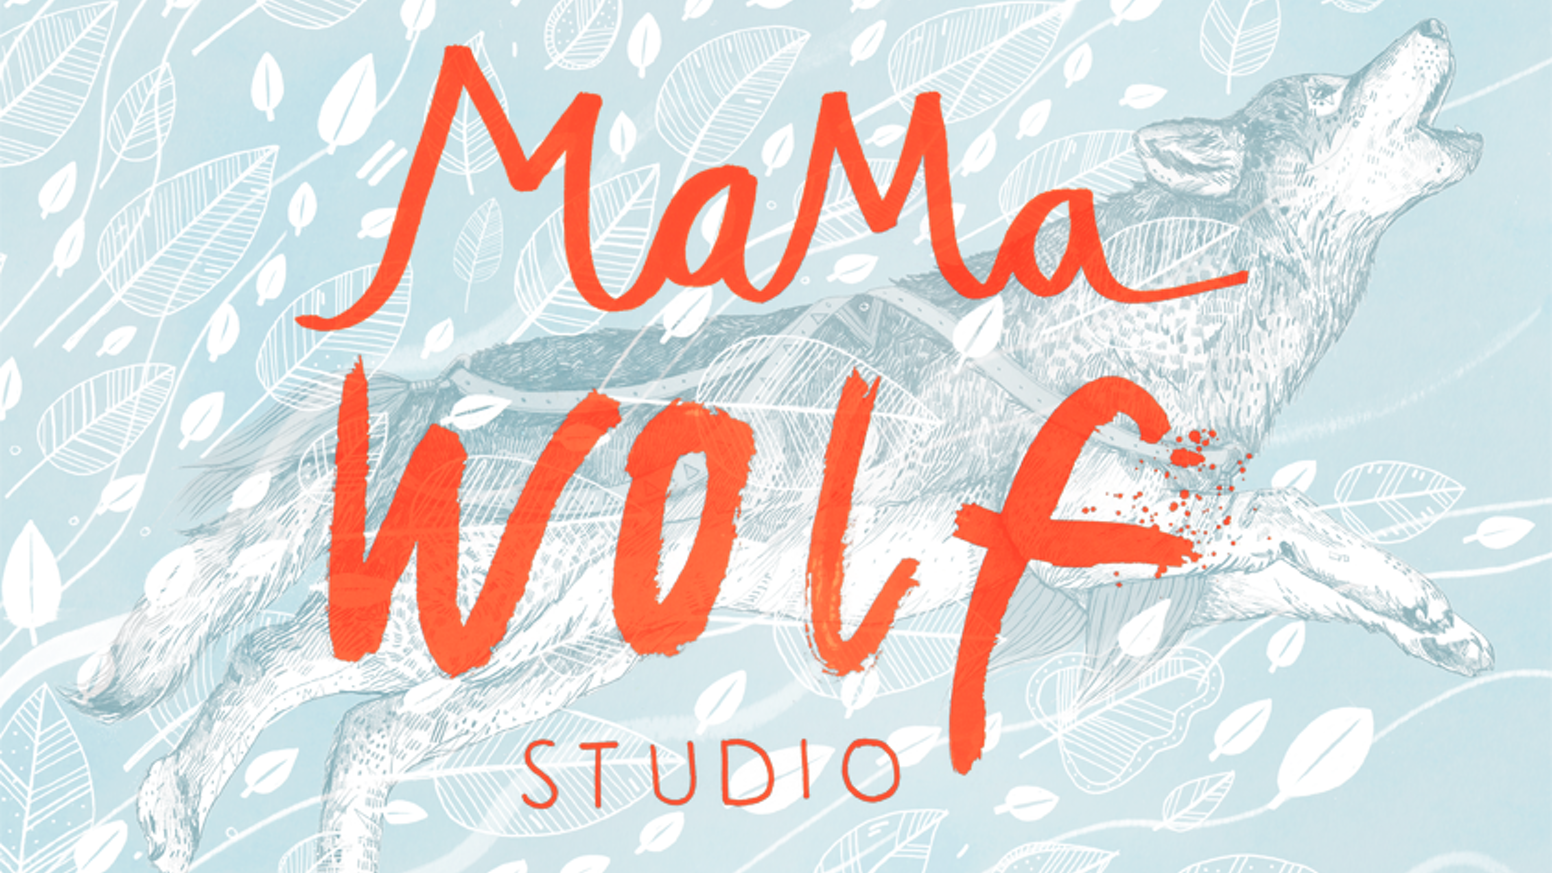 Help us to open our doors and talk, teach and shop all things illustration! We want to grow Studio Mama Wolf by inspiring YOU!